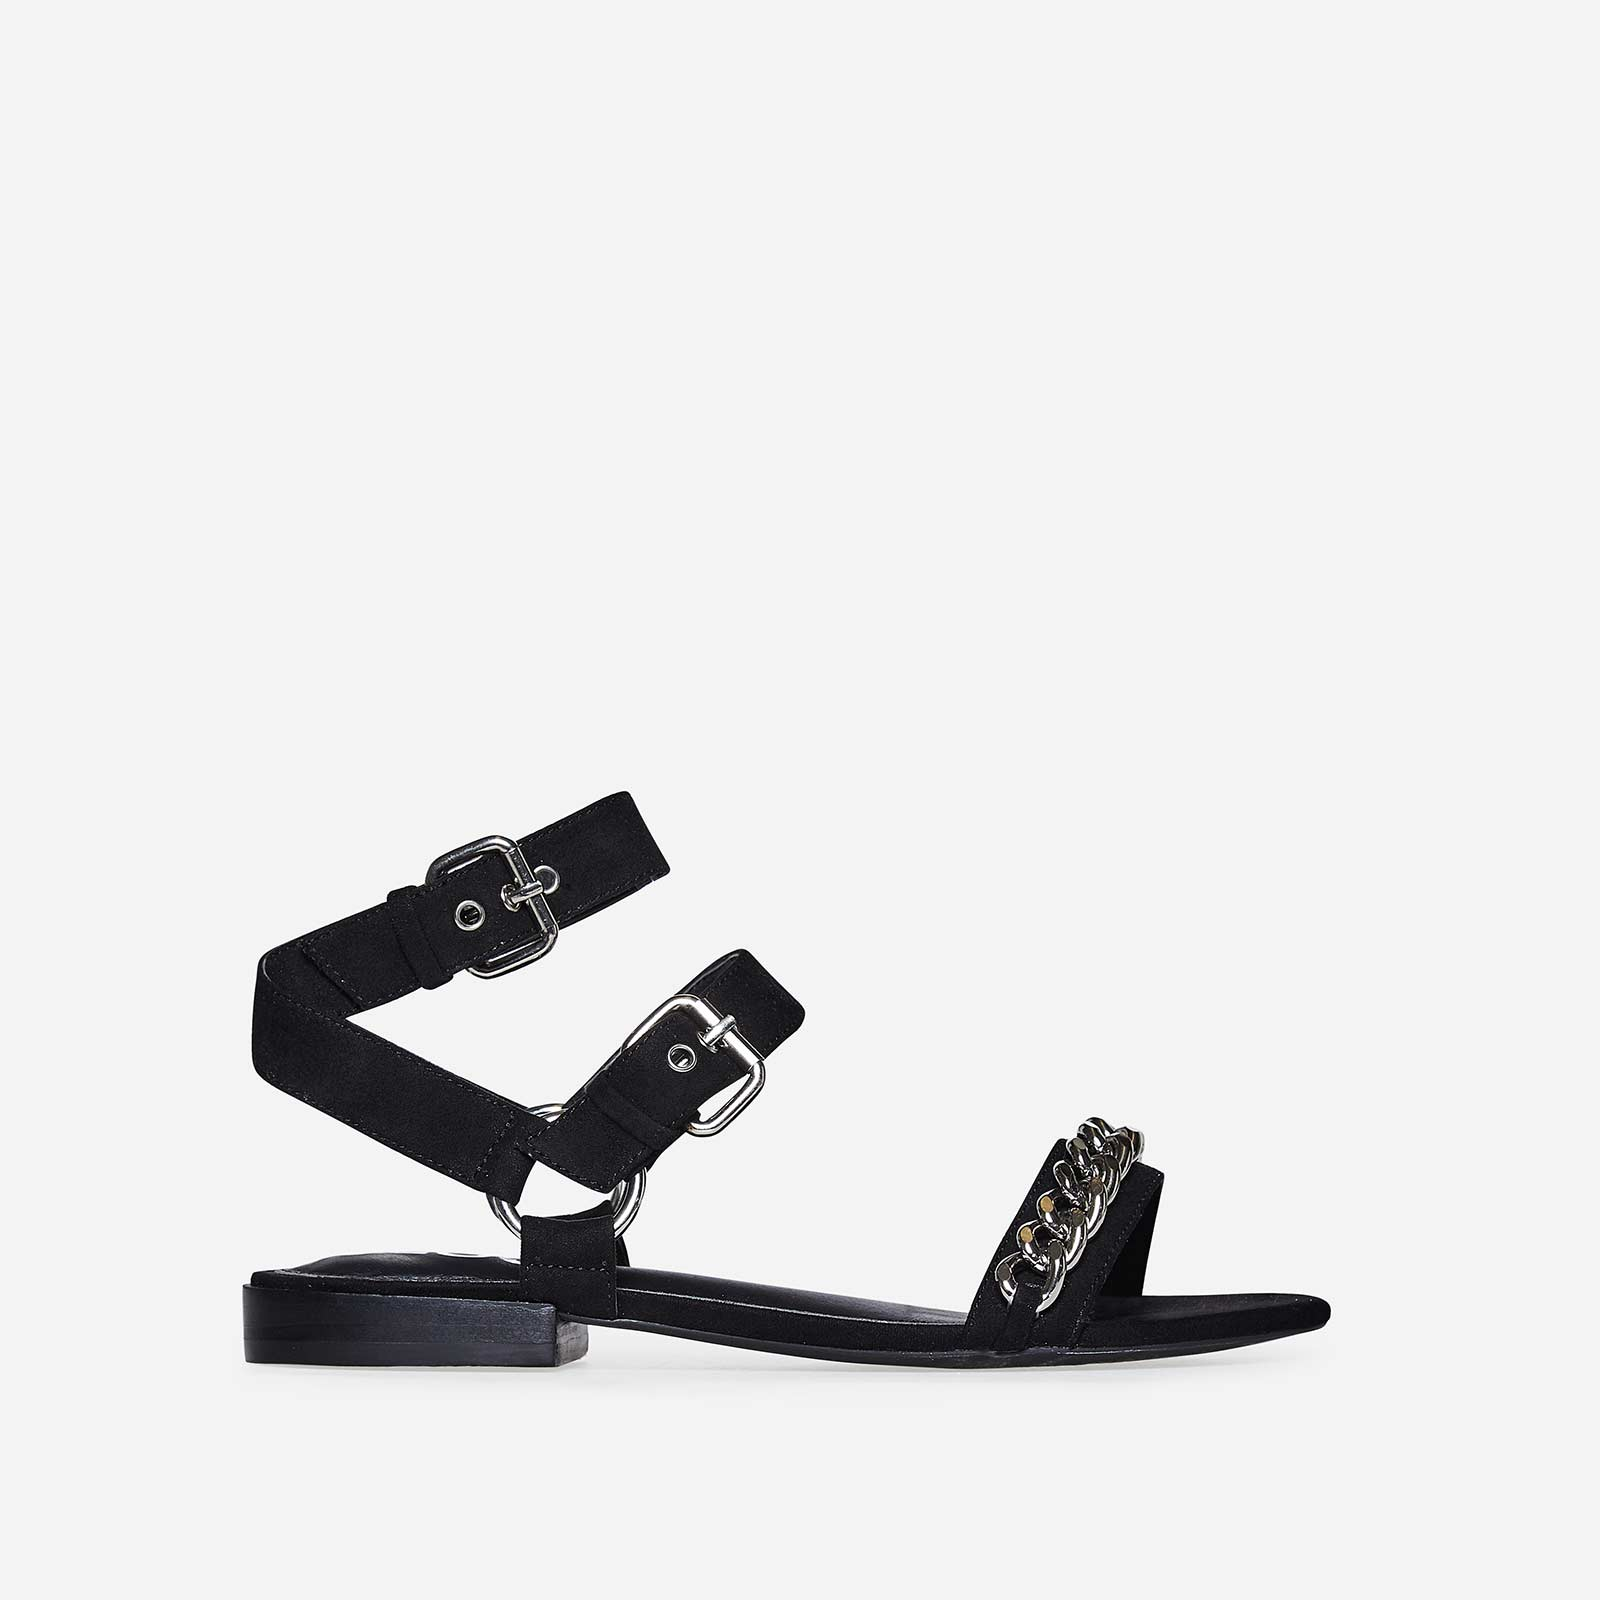 Alana Silver Chain Detail Sandal In Black Faux Suede